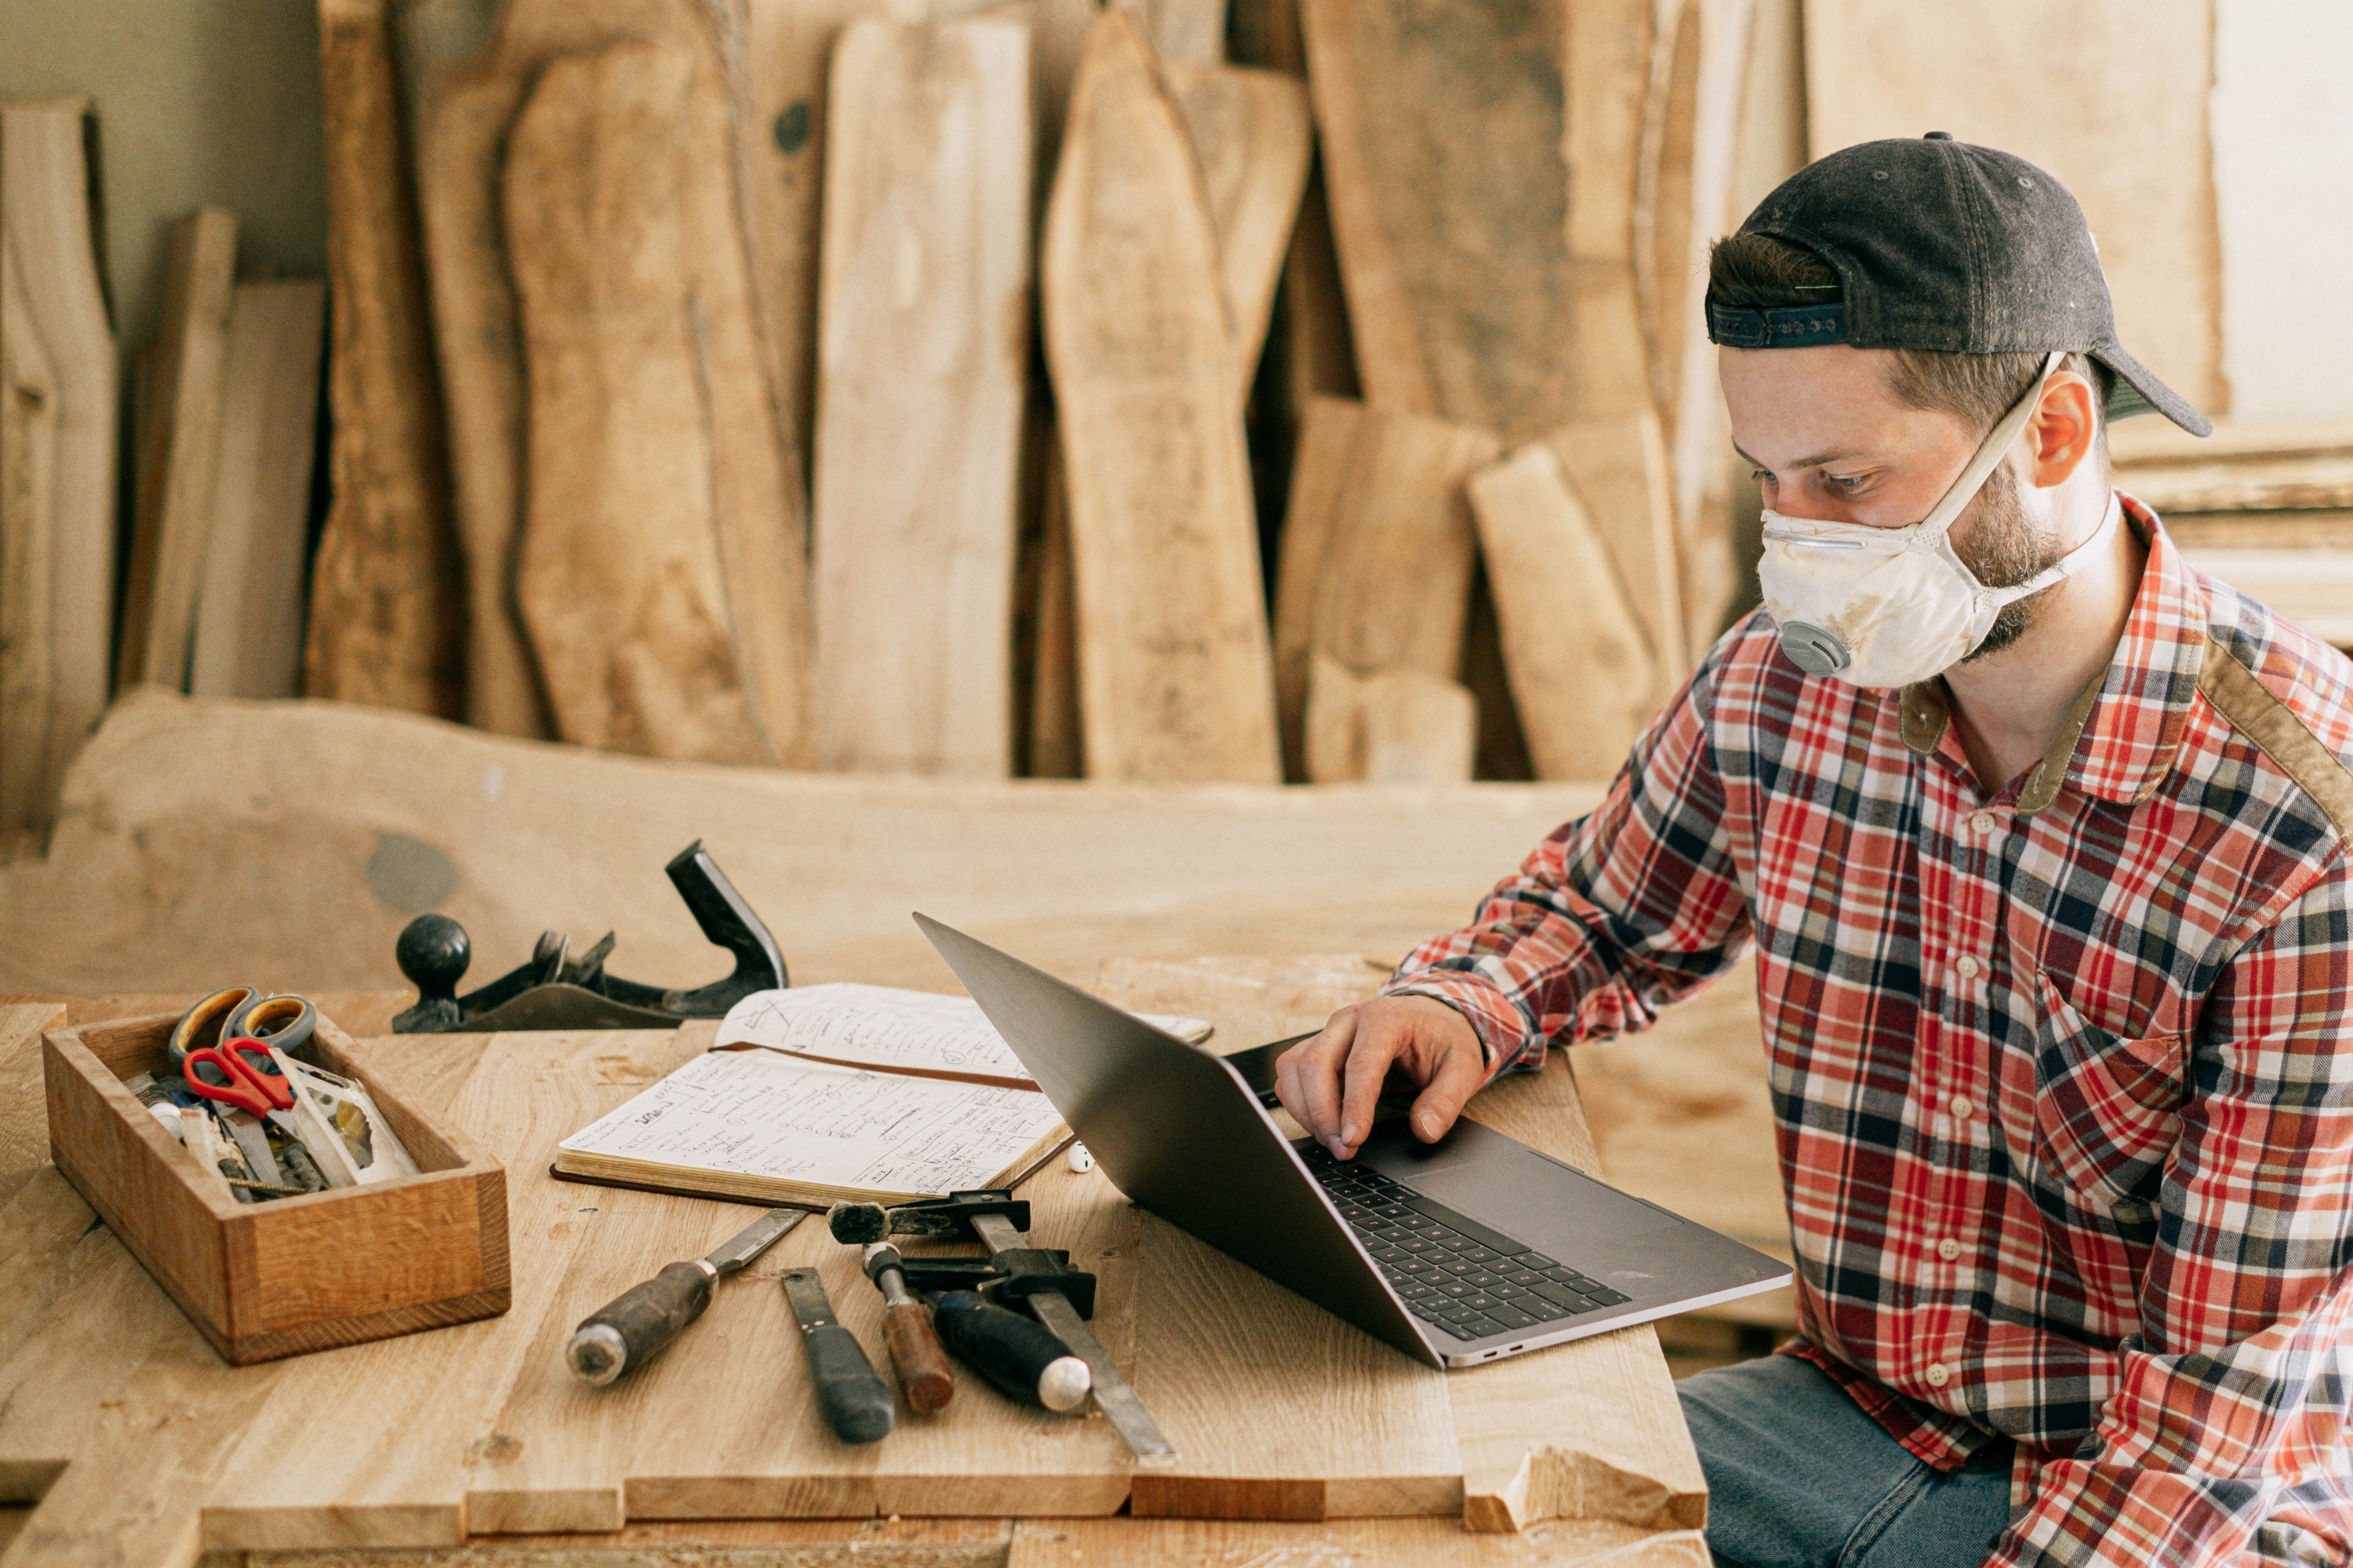 Carpenter working on his laptop surrounded by wood